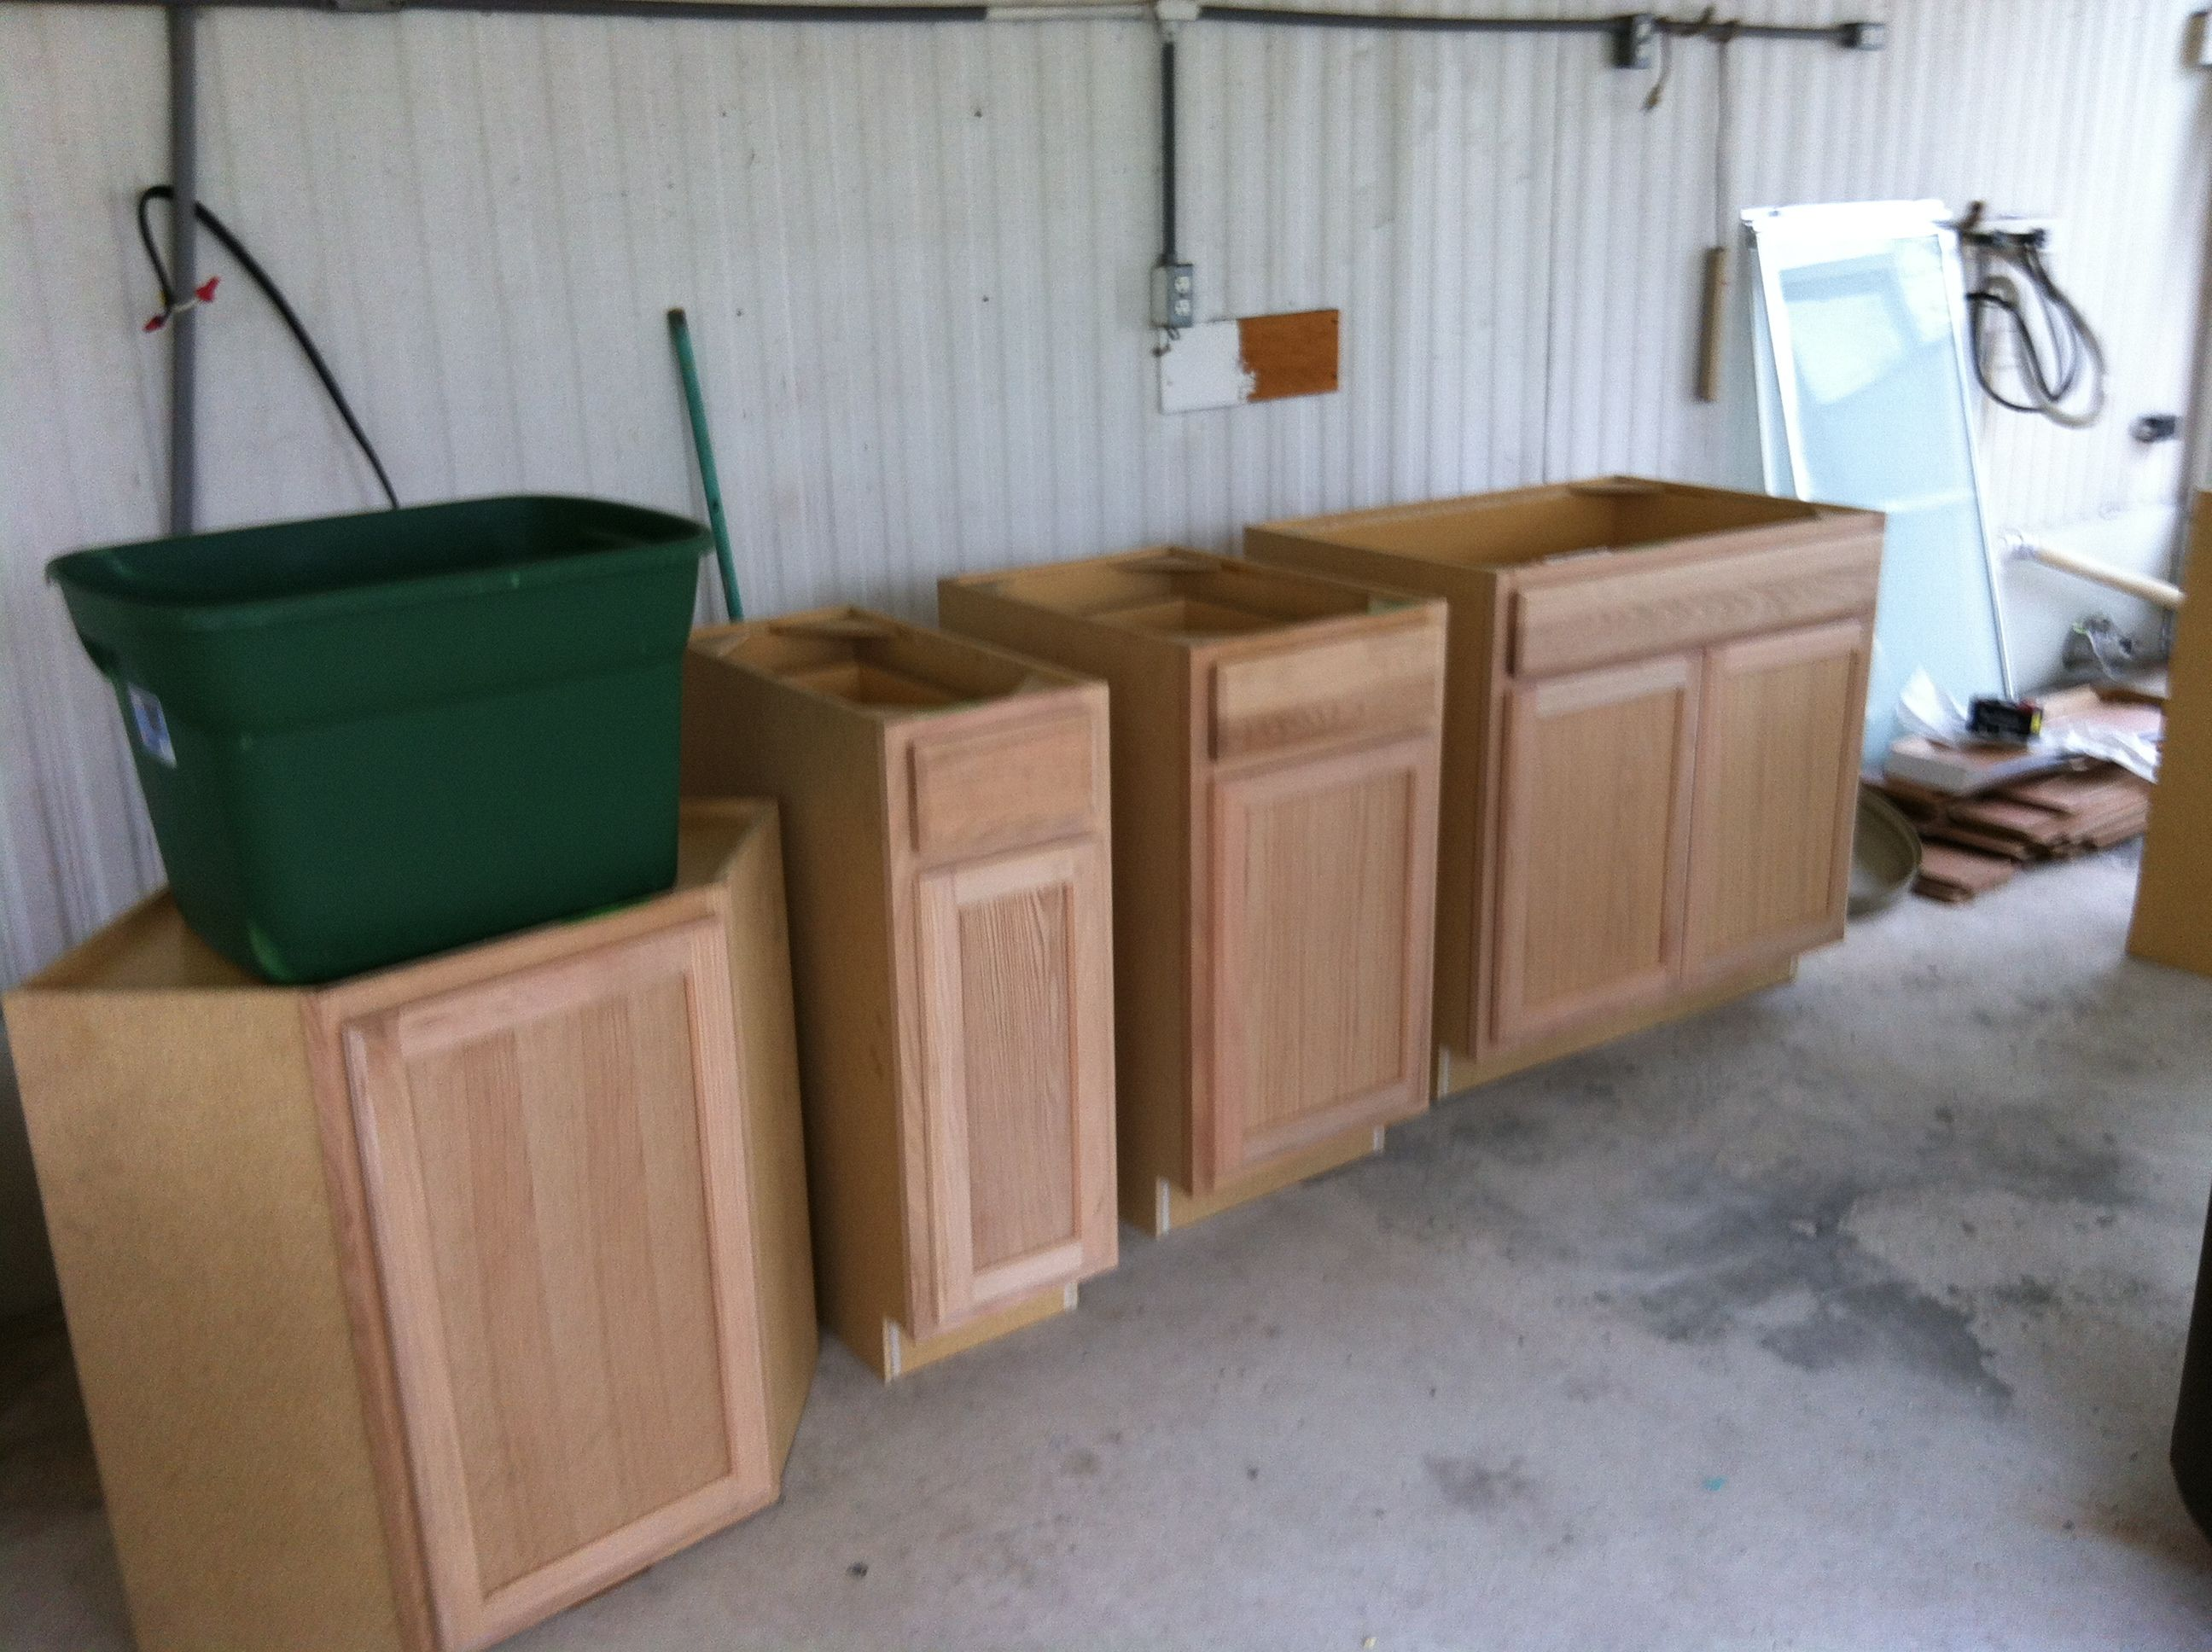 our unfinished kitchen cupboards awaiting their finish